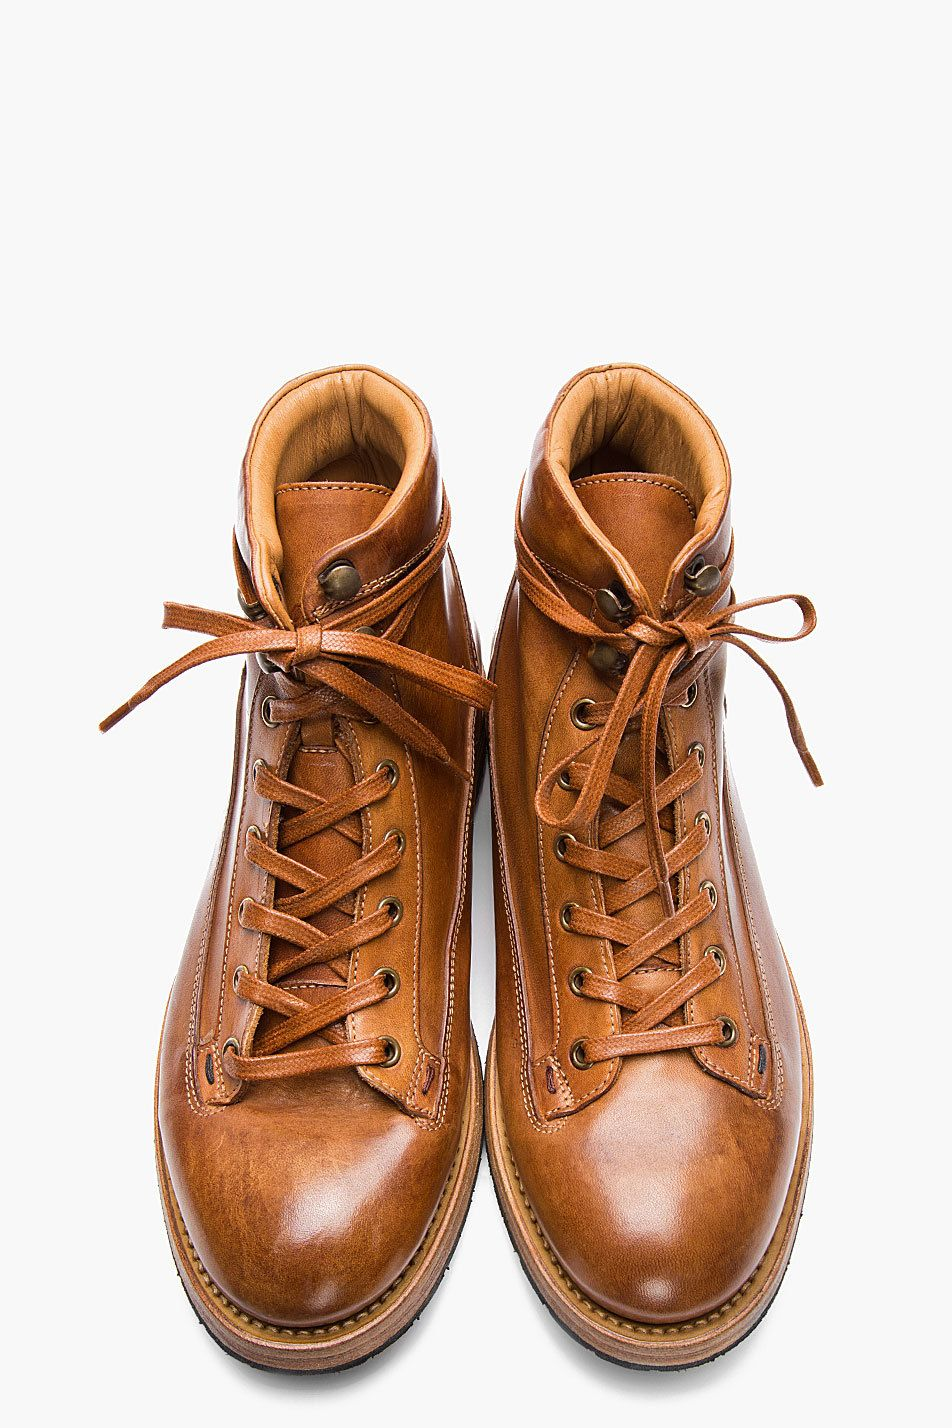 3d37ae08be9 7 Days Theory — PAUL SMITH - TAN LEATHER BEAT UP STUBBS BOOTS ...